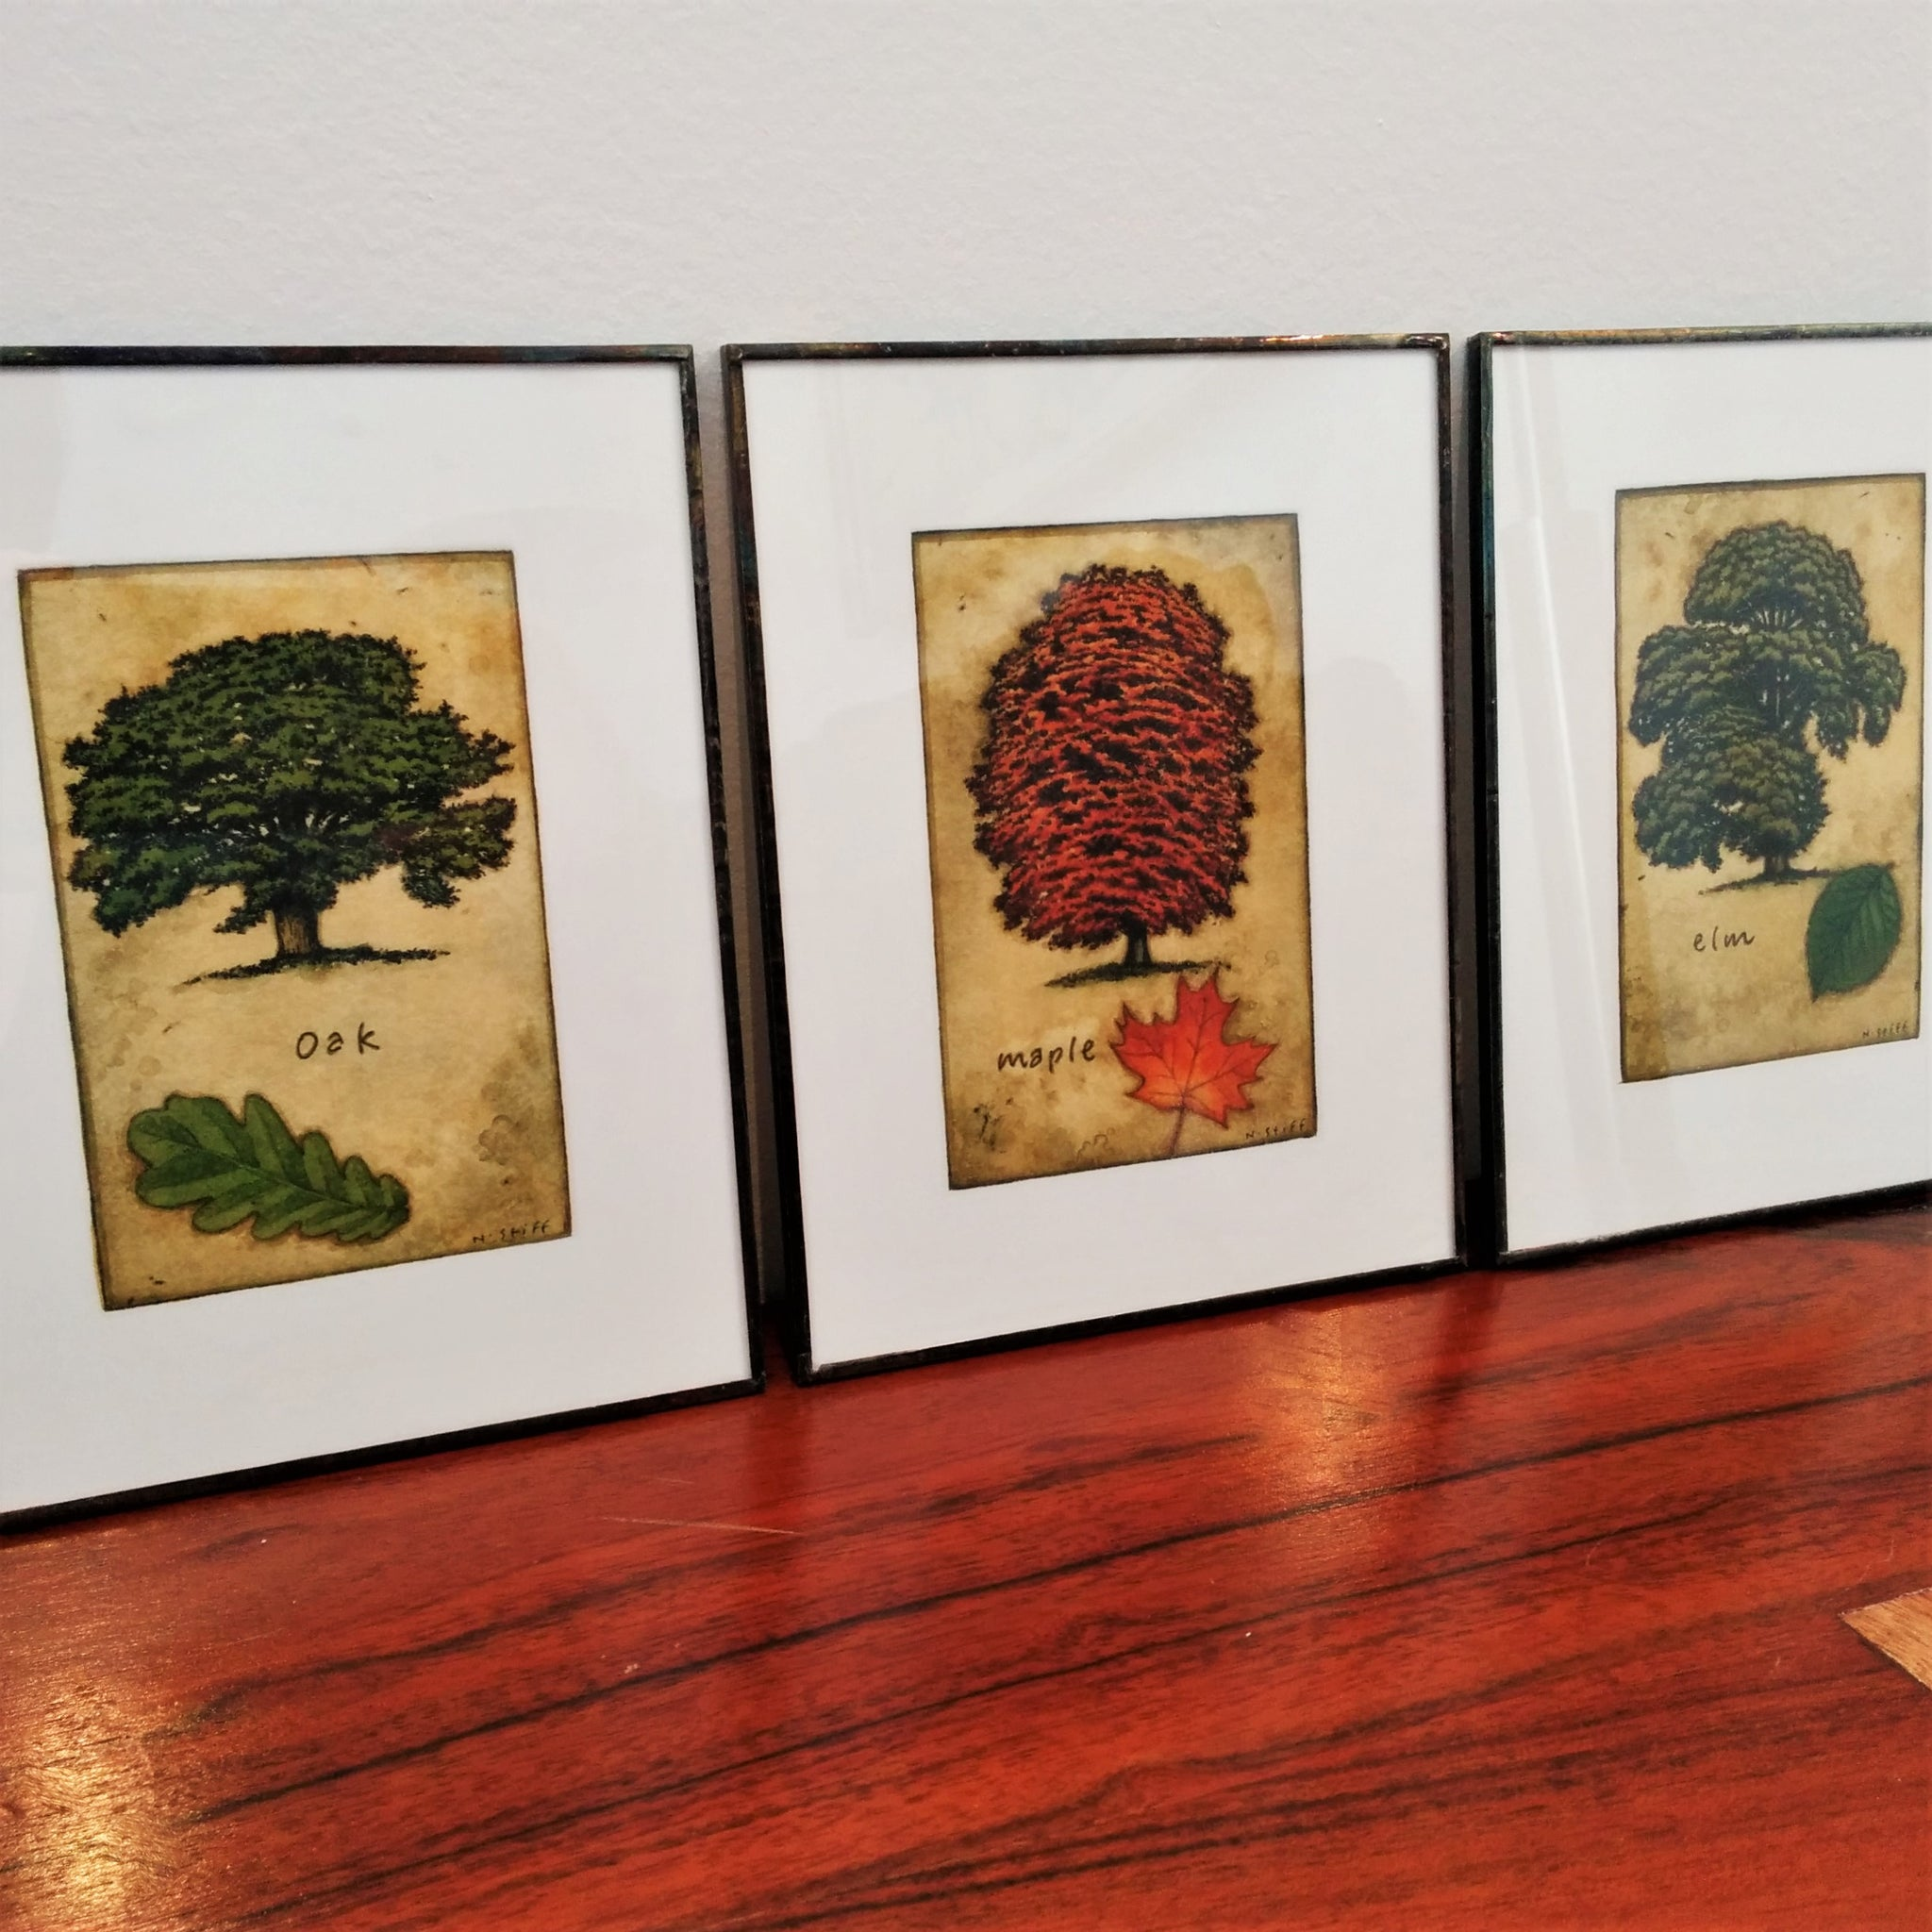 Set of three handprinted etchings of trees by Canadian Artist